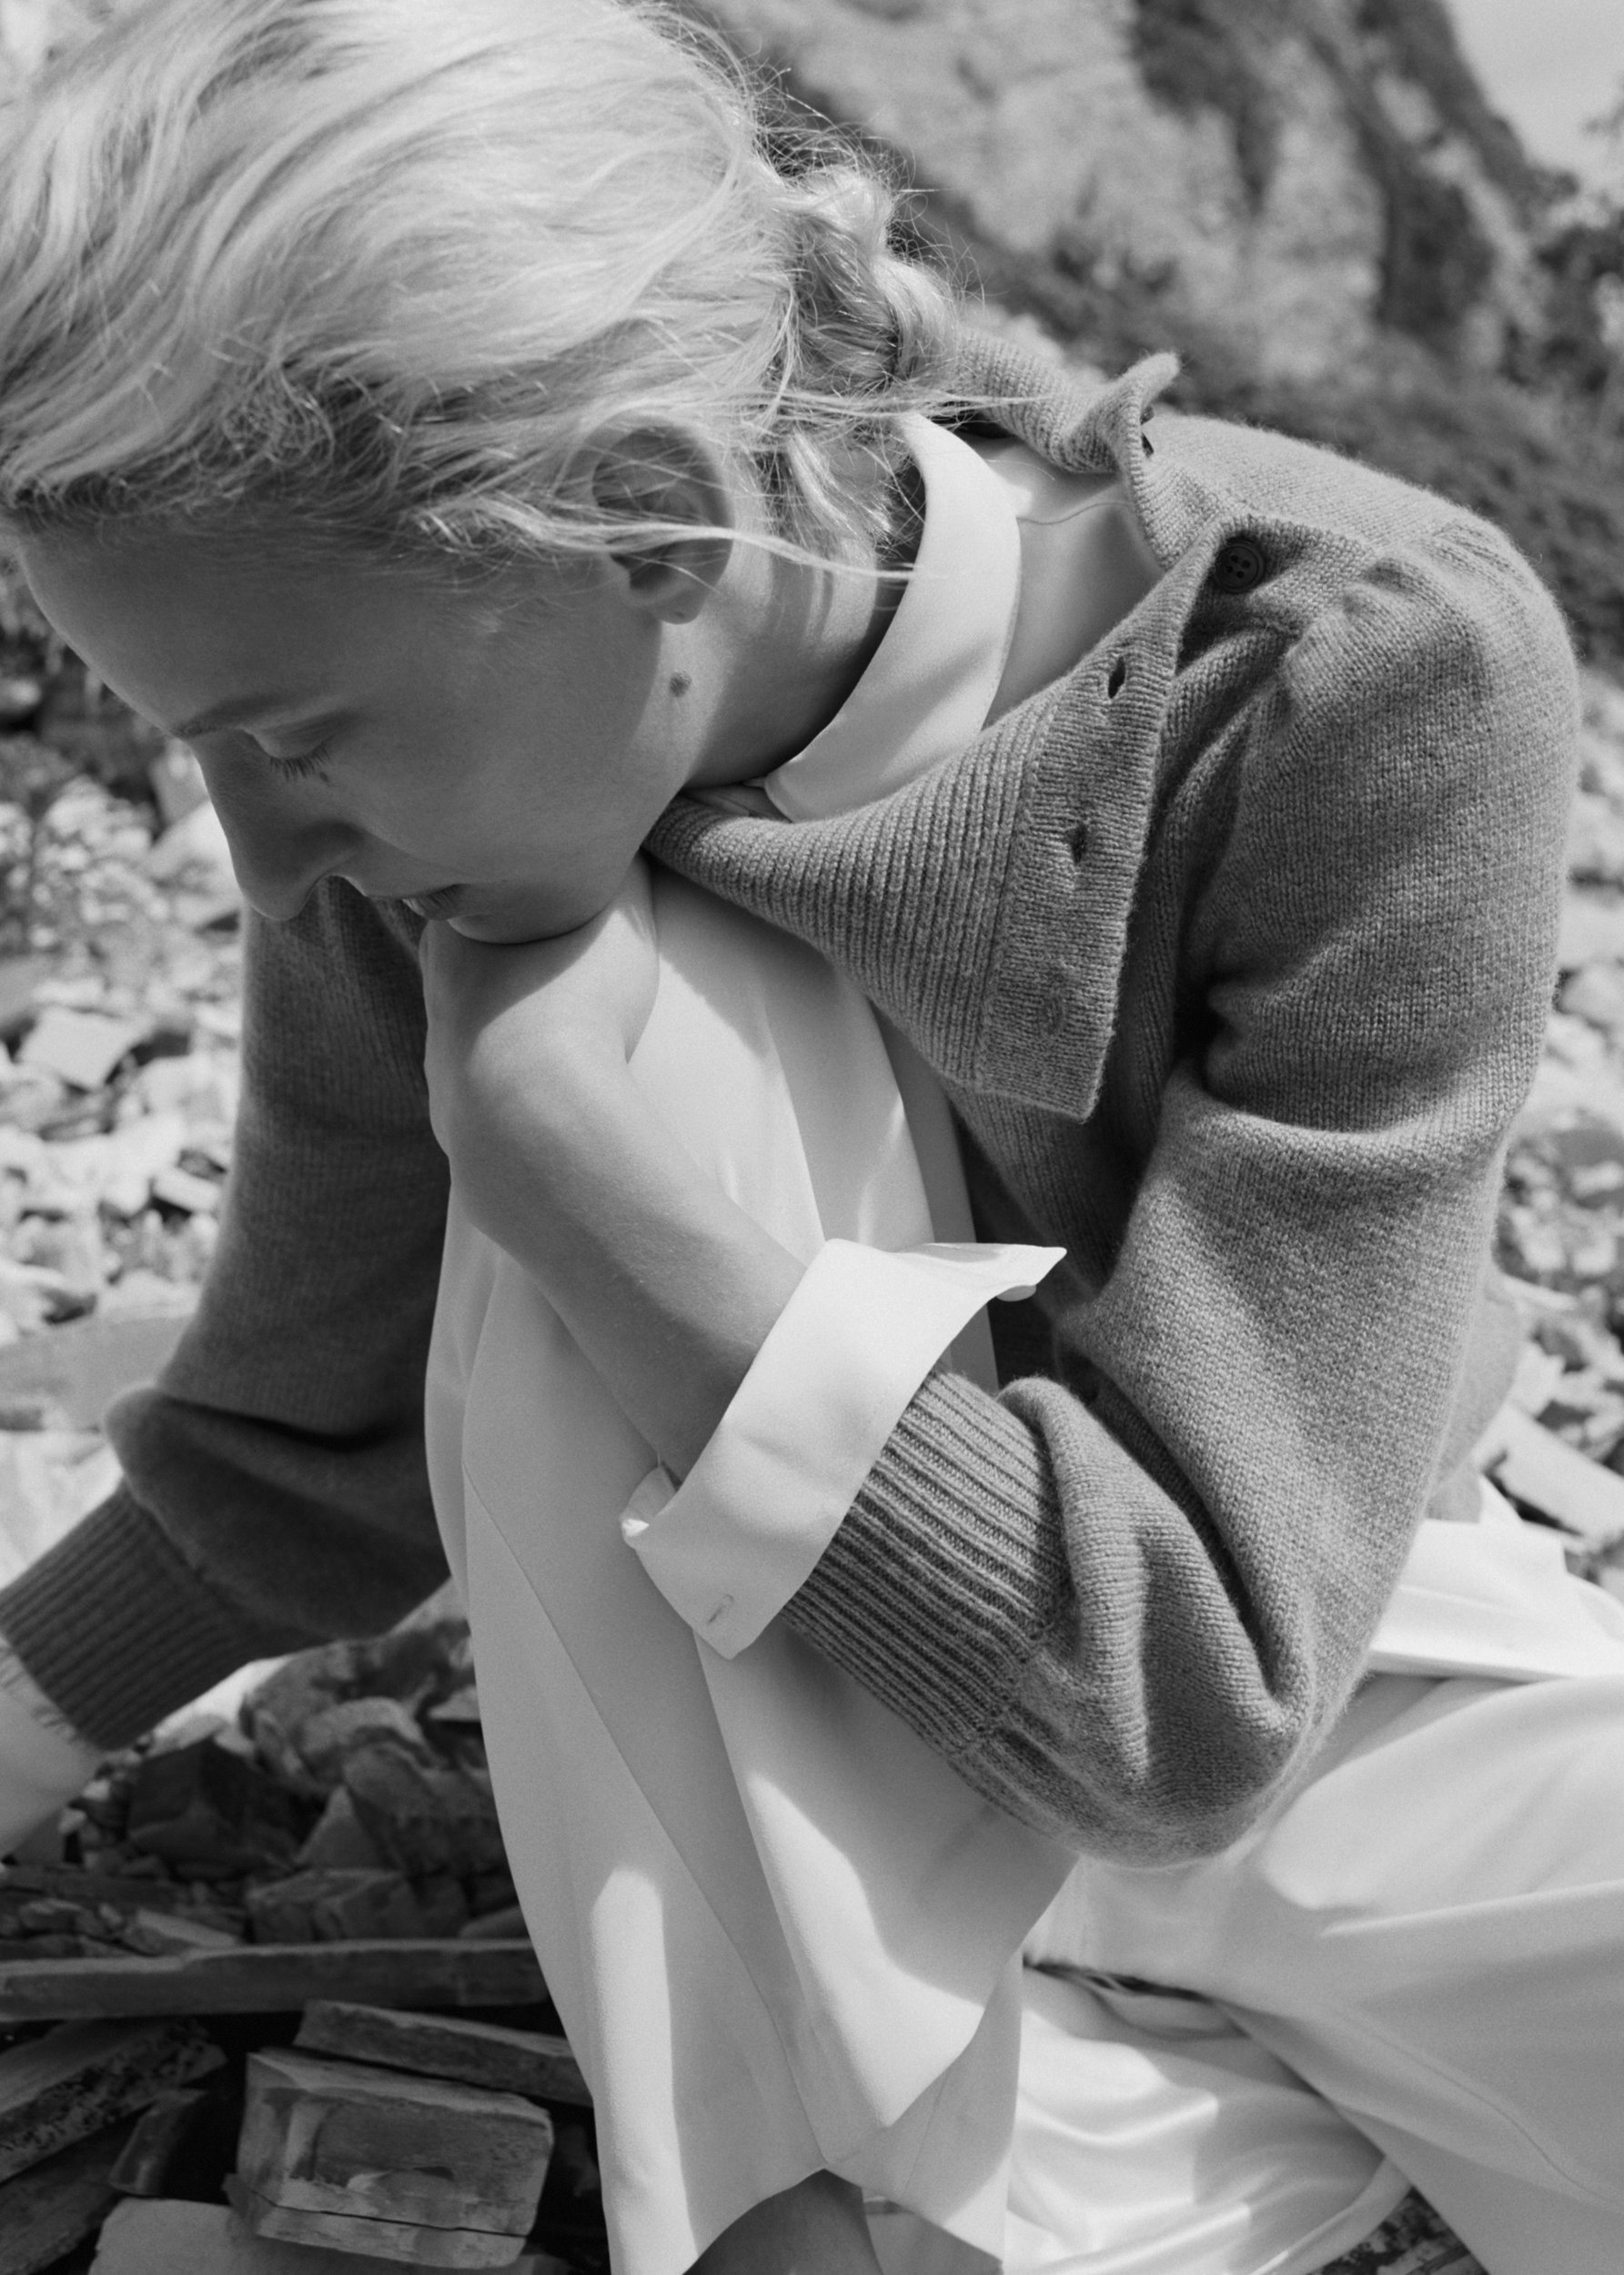 Button Shoulder Sweater - by Zoe Gherter for Co Collections